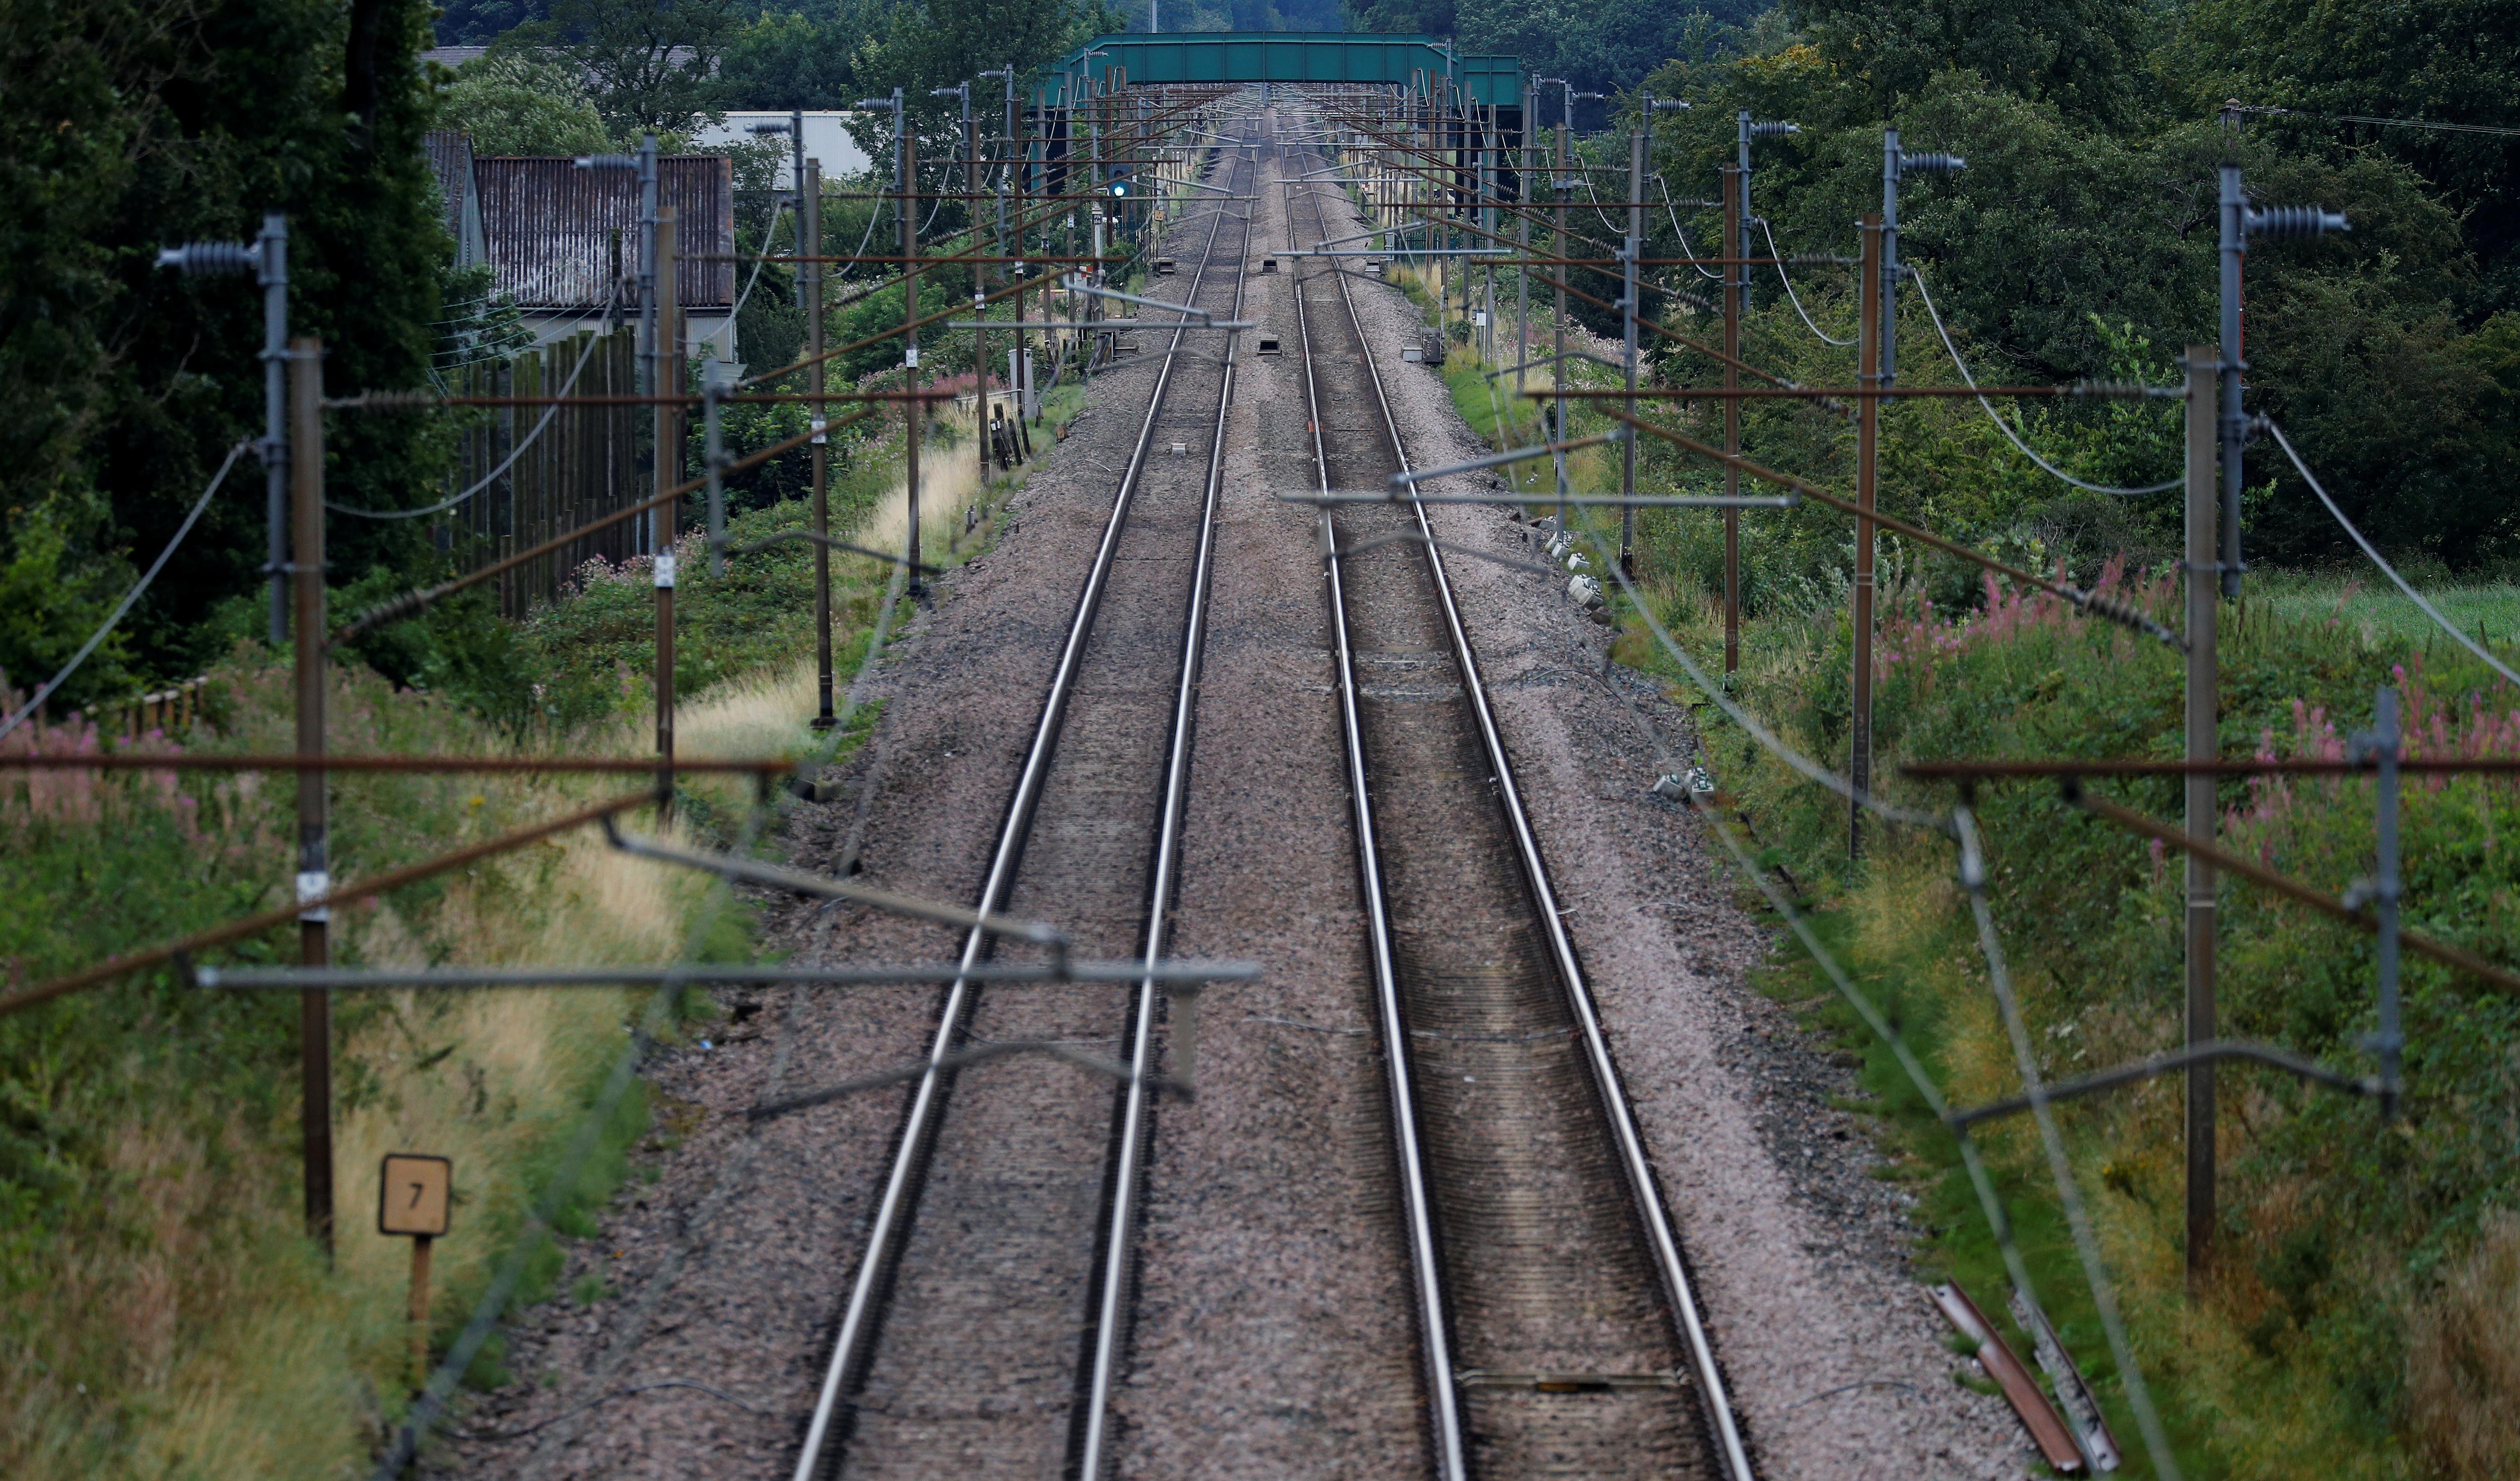 Column: Britain's politicians would be wrong to undo rail closures